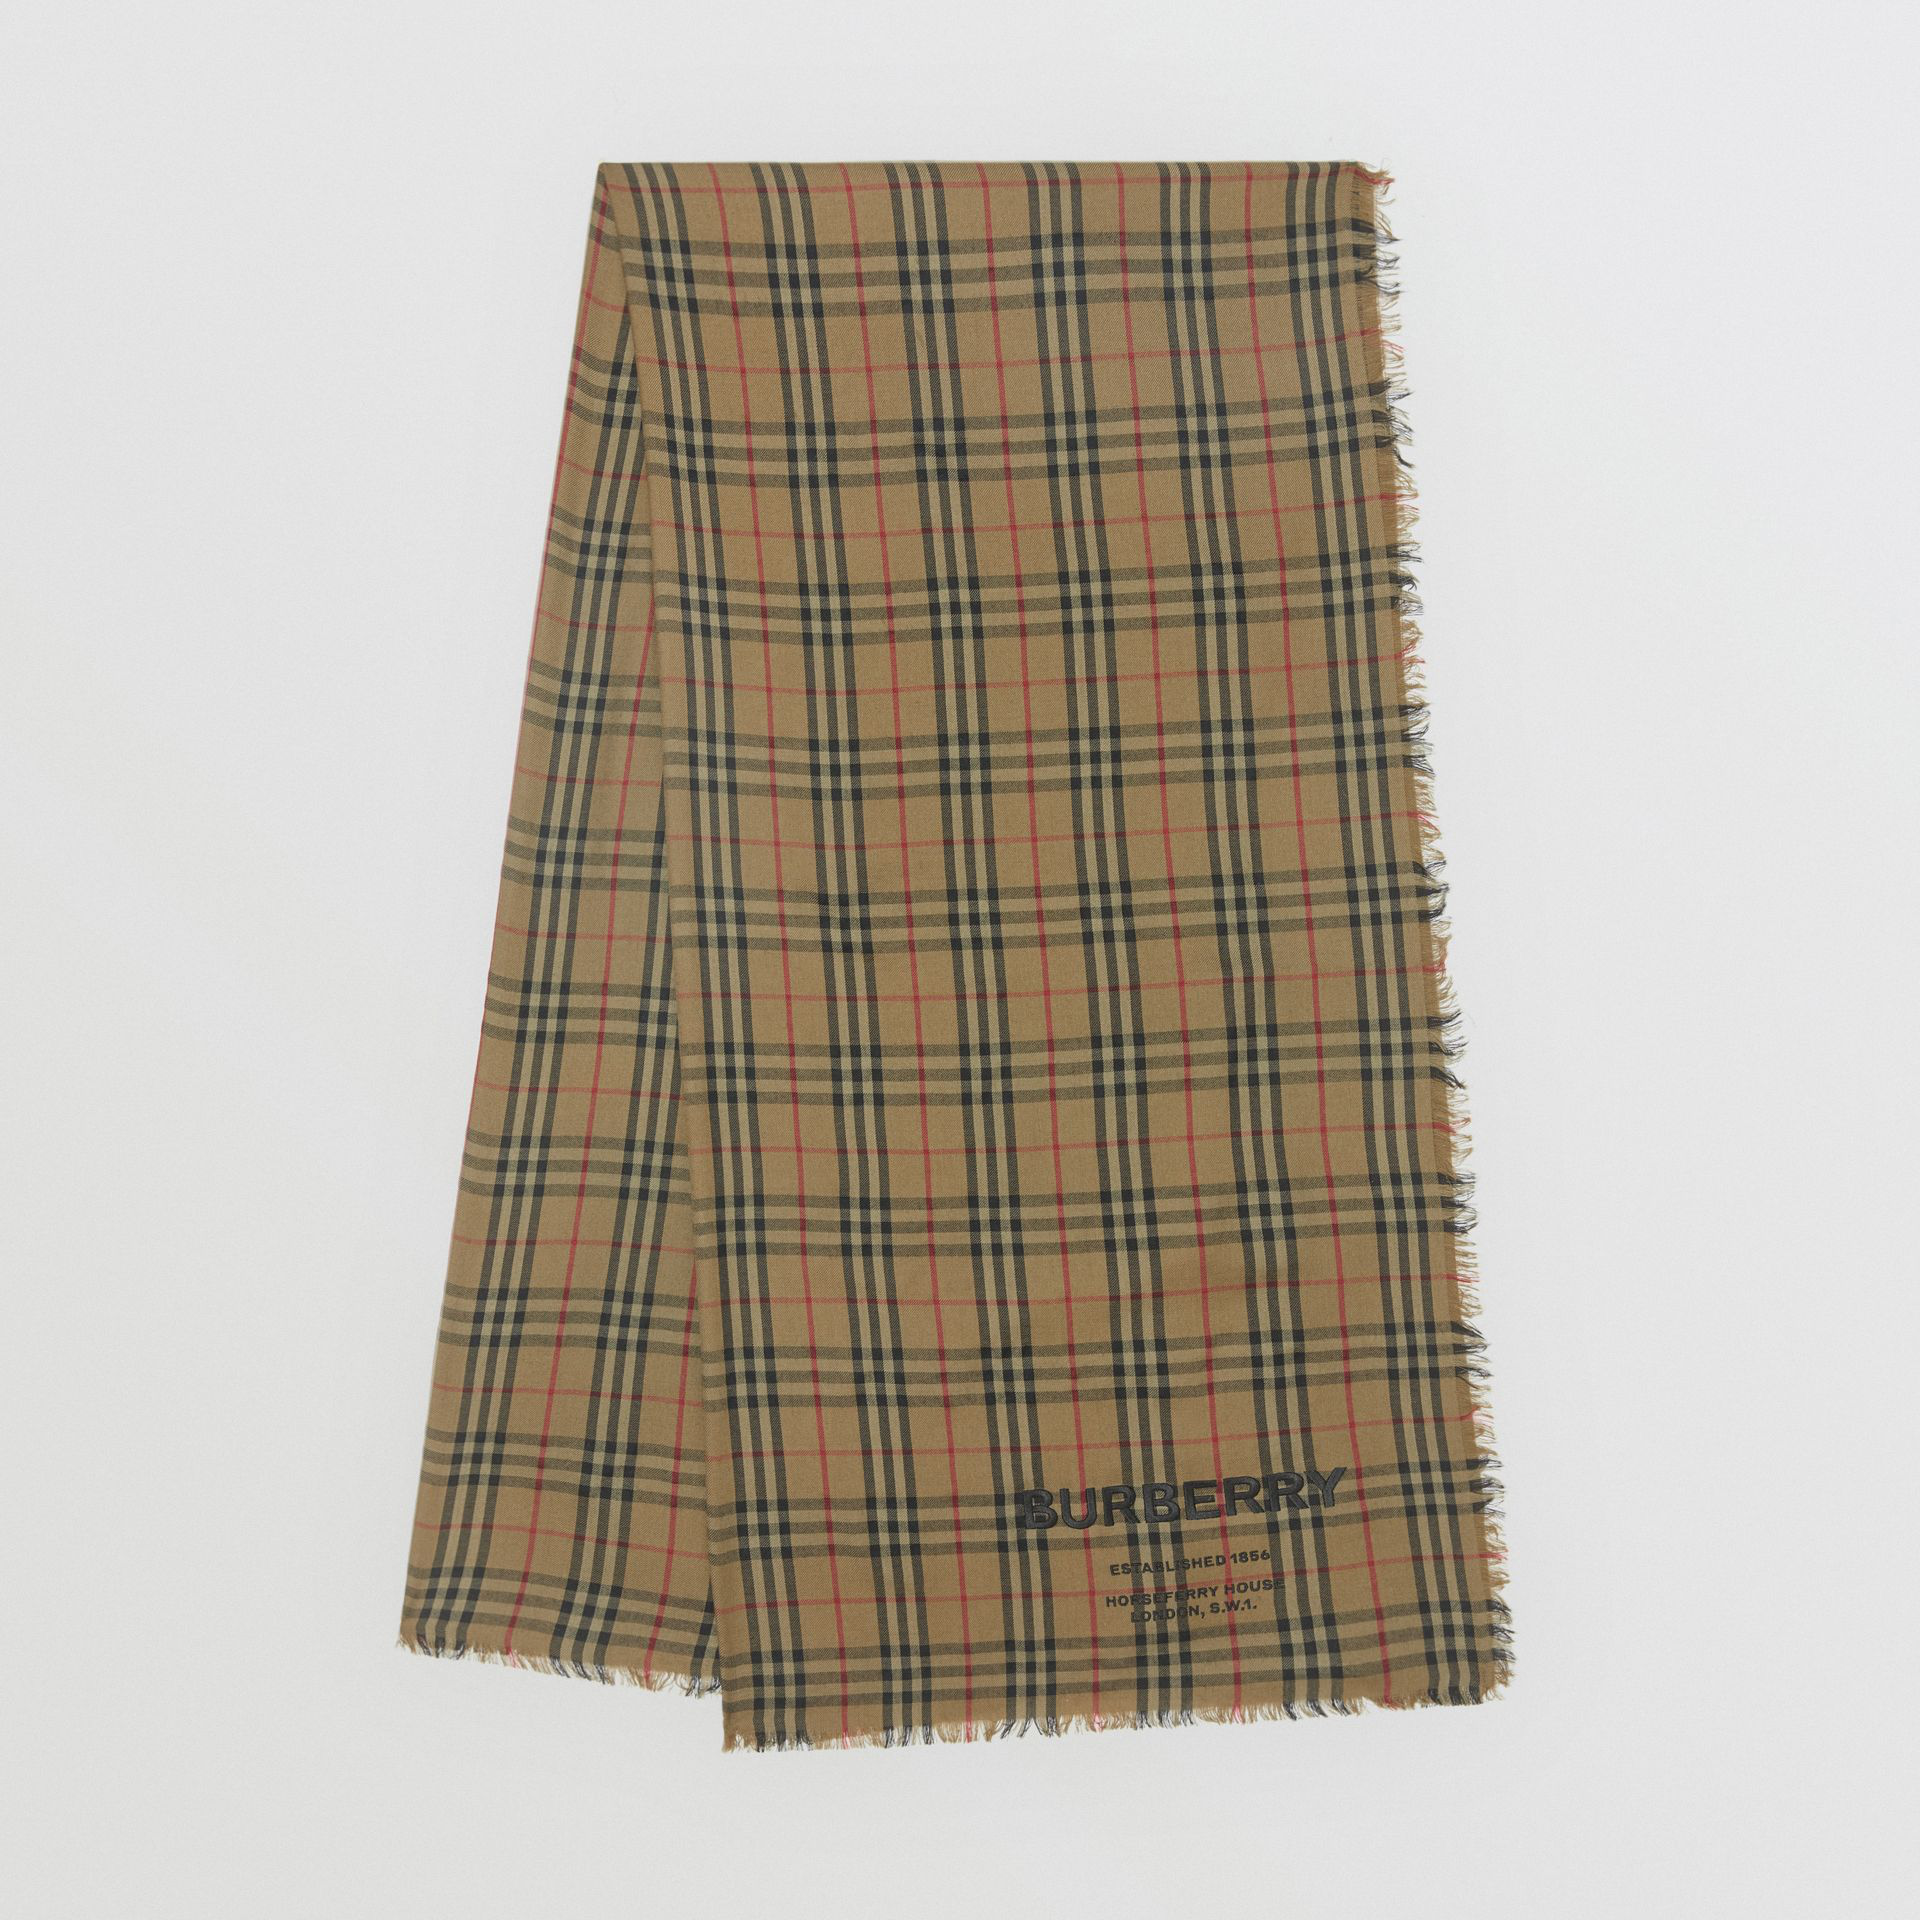 Burberry Embroidered Vintage Check Lightweight Cashmere Scarf In Olive Green